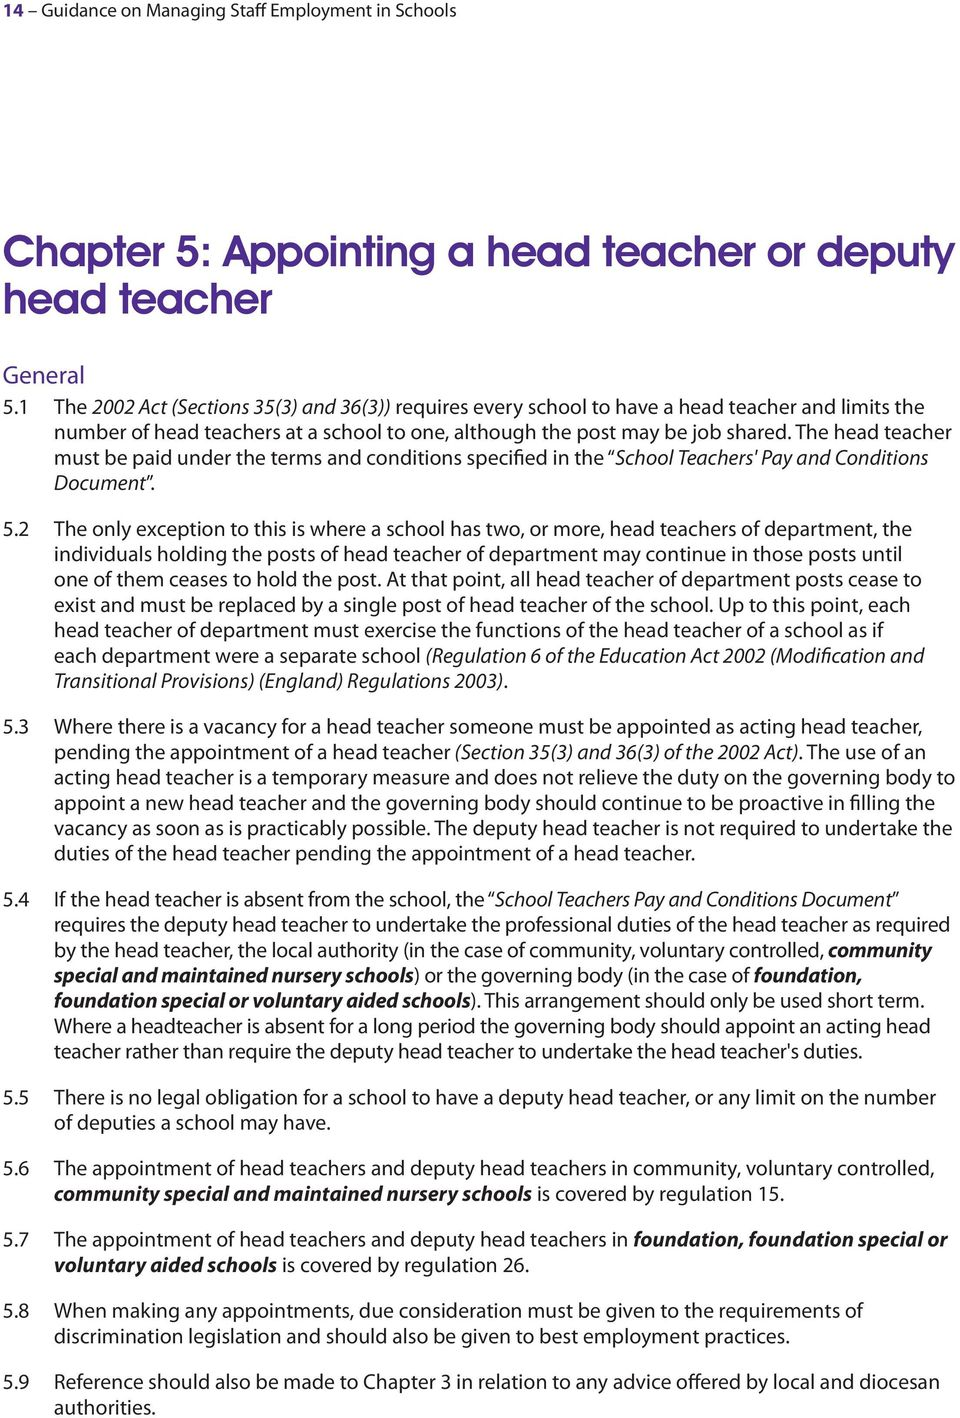 The head teacher must be paid under the terms and conditions specified in the School Teachers' Pay and Conditions Document. 5.